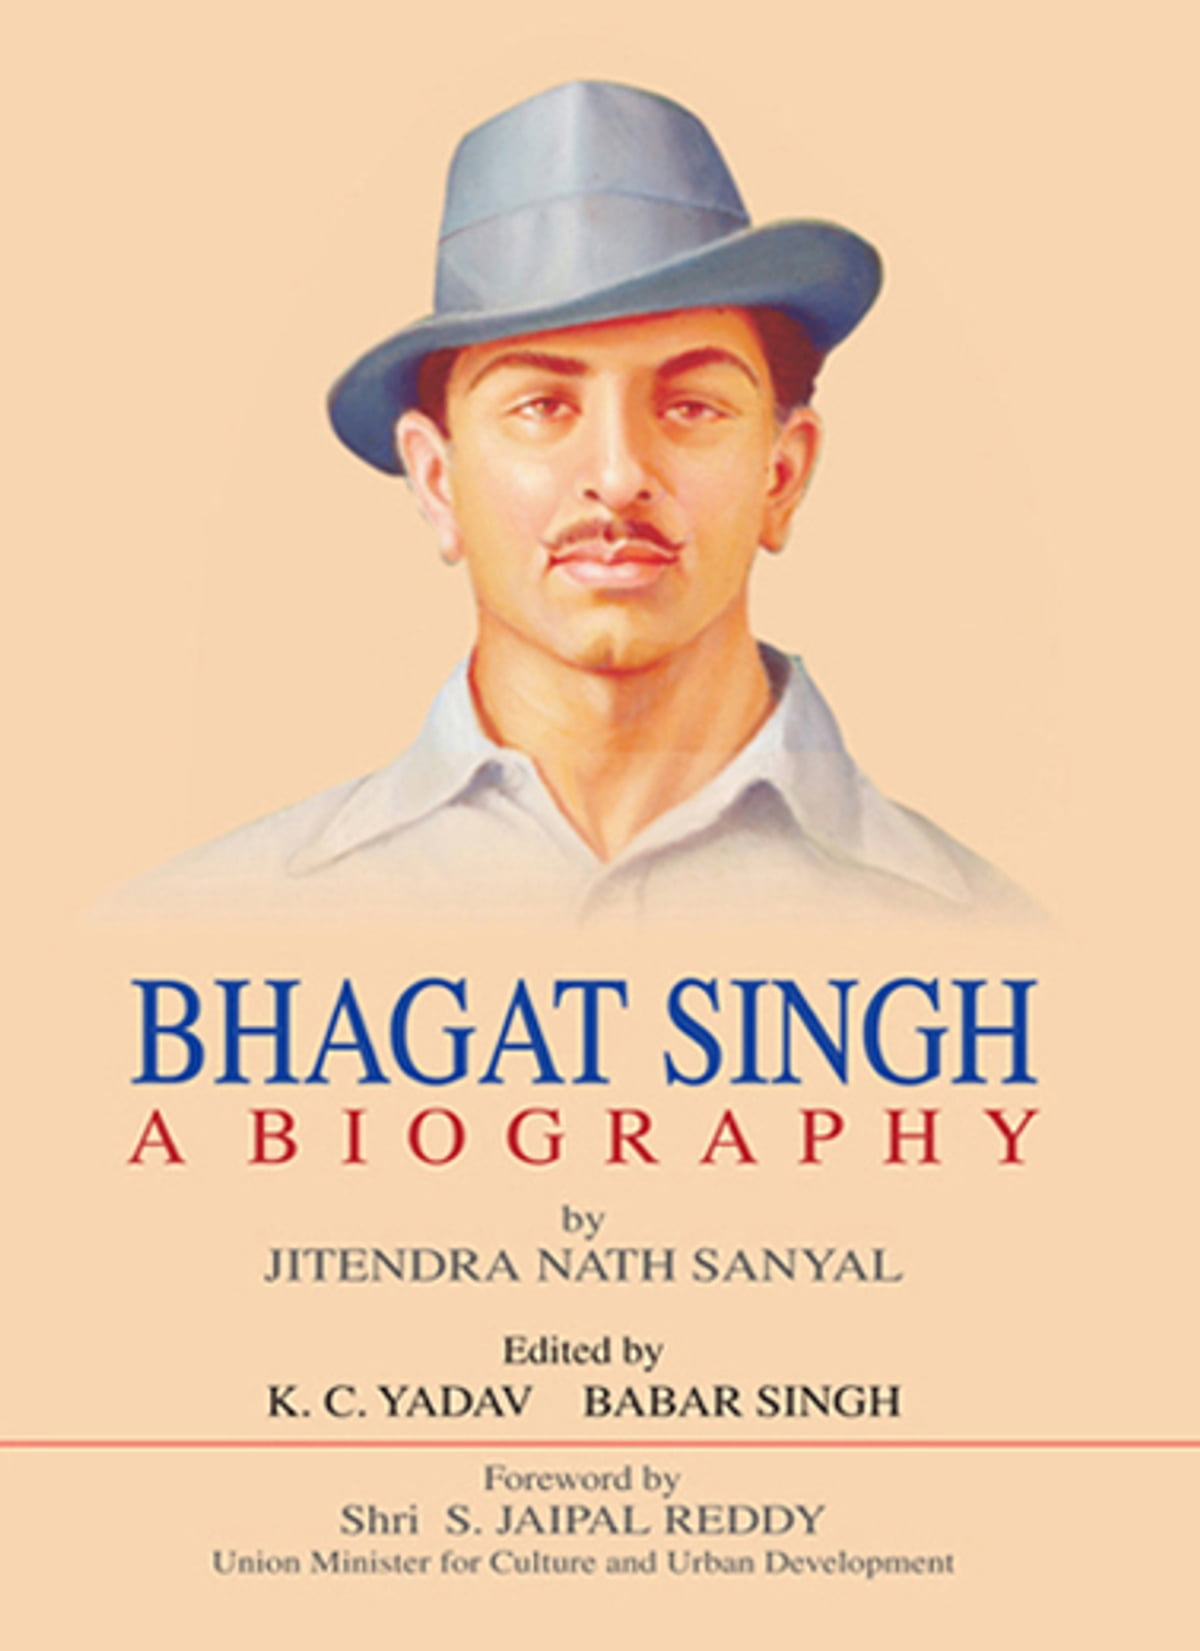 bhagat singh a biography ebook by jitendra nath sanyal bhagat singh a biography ebook by jitendra nath sanyal 9781618200747